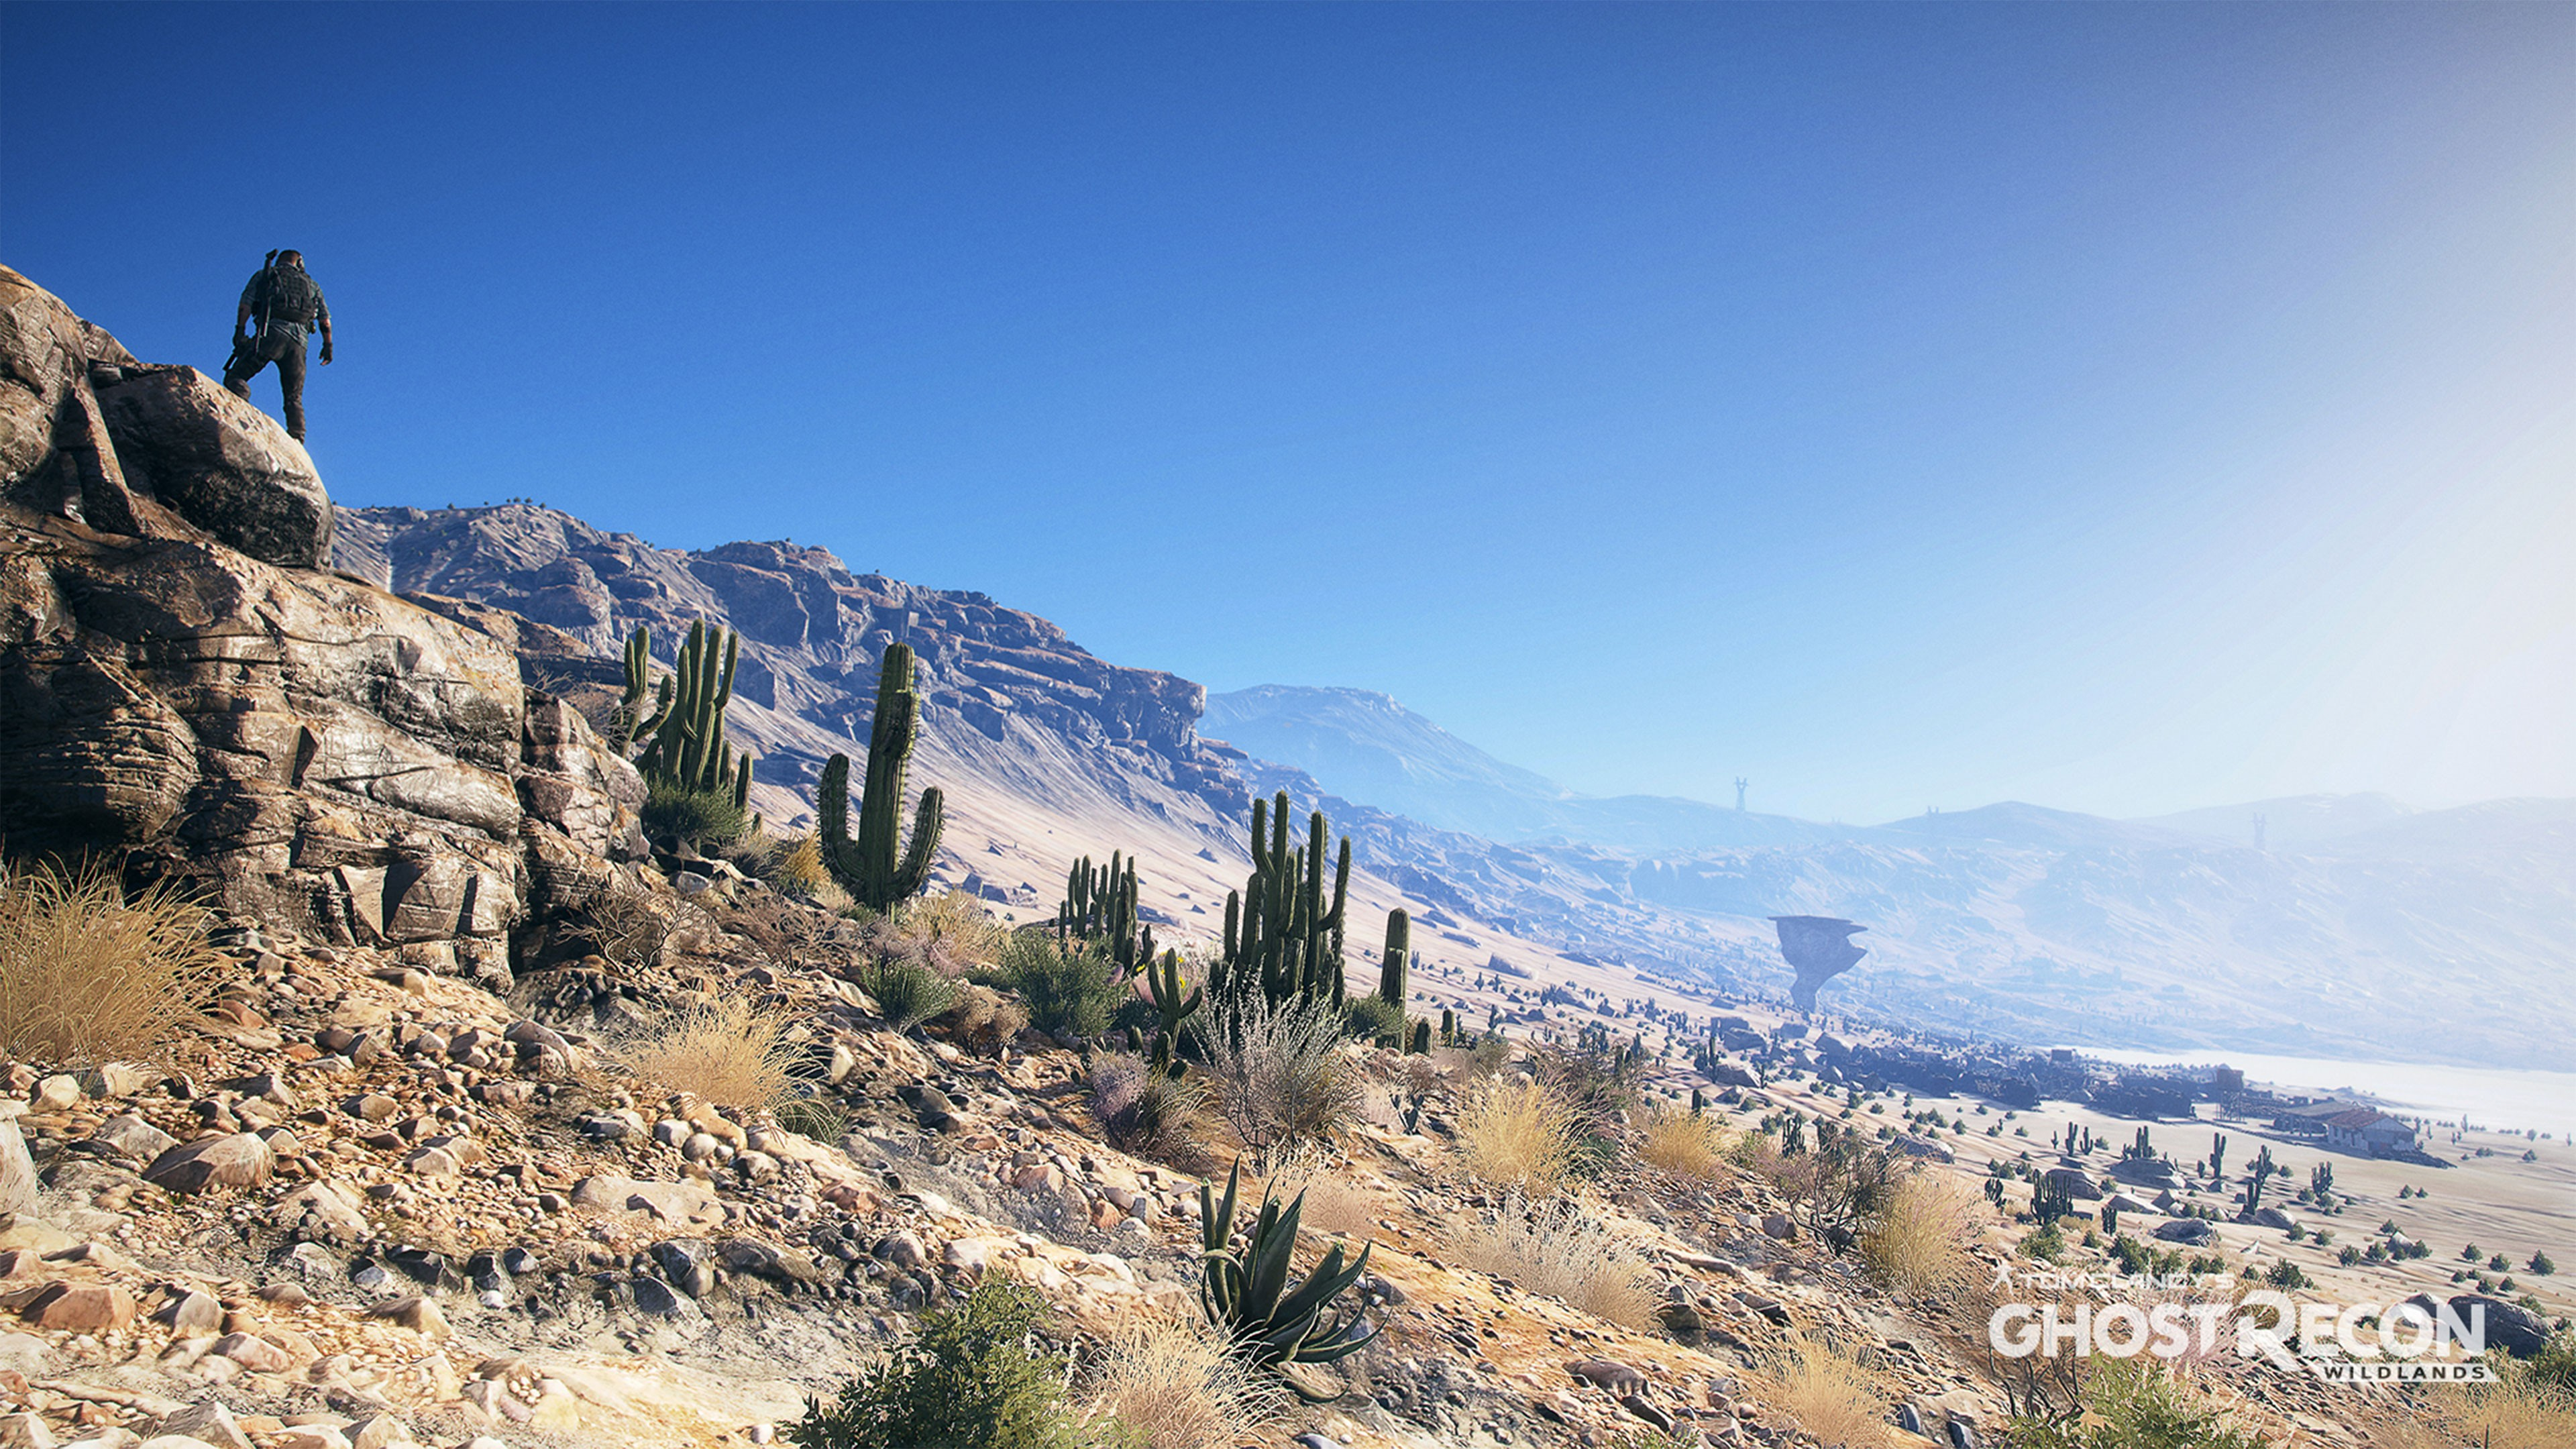 Ghost Recon Wildlands Wallpaper Download Free Stunning High